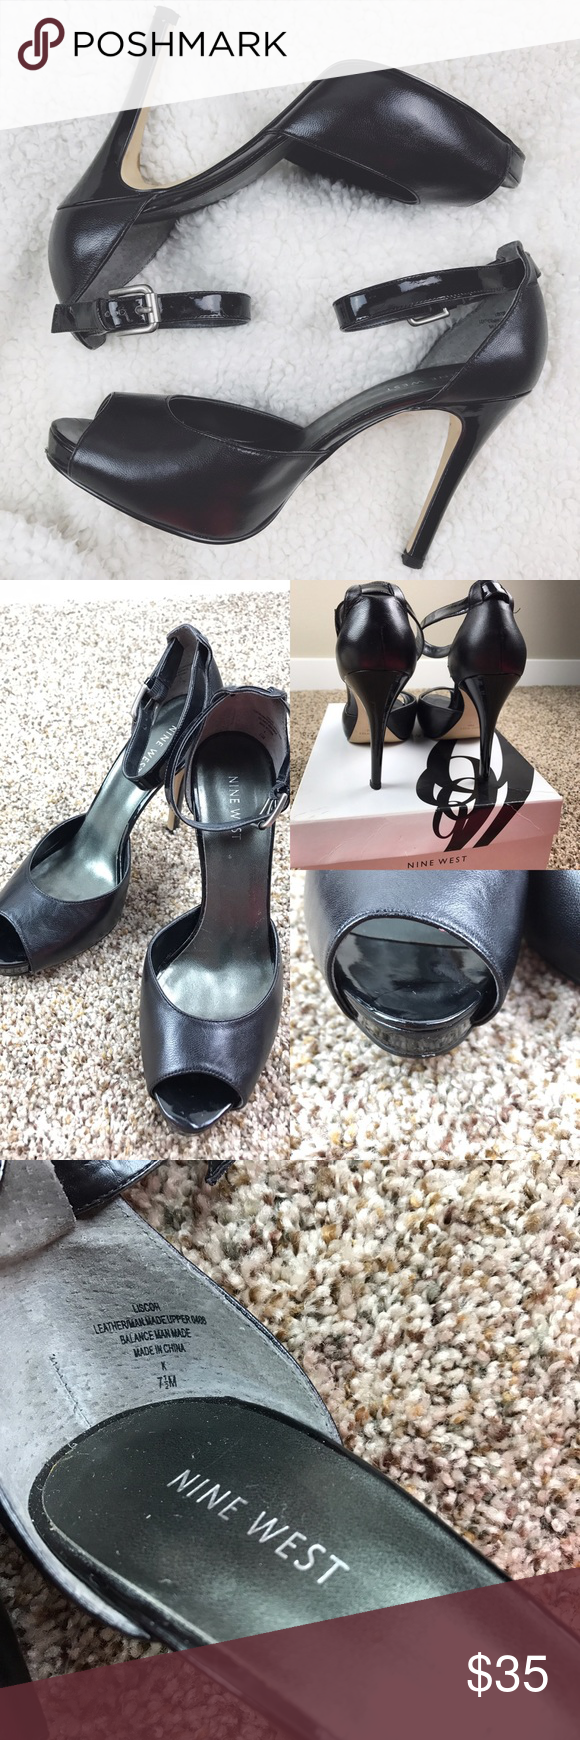 Nine West LISCOR Black Leather heels Gently Used• reference pictures• minor nick at front point of right pump • reference pictures• stunning open toe black leather heel/pump with ankle strap• perfect for any outfit and occasion **PRICE FIRM** Nine West Shoes Heels